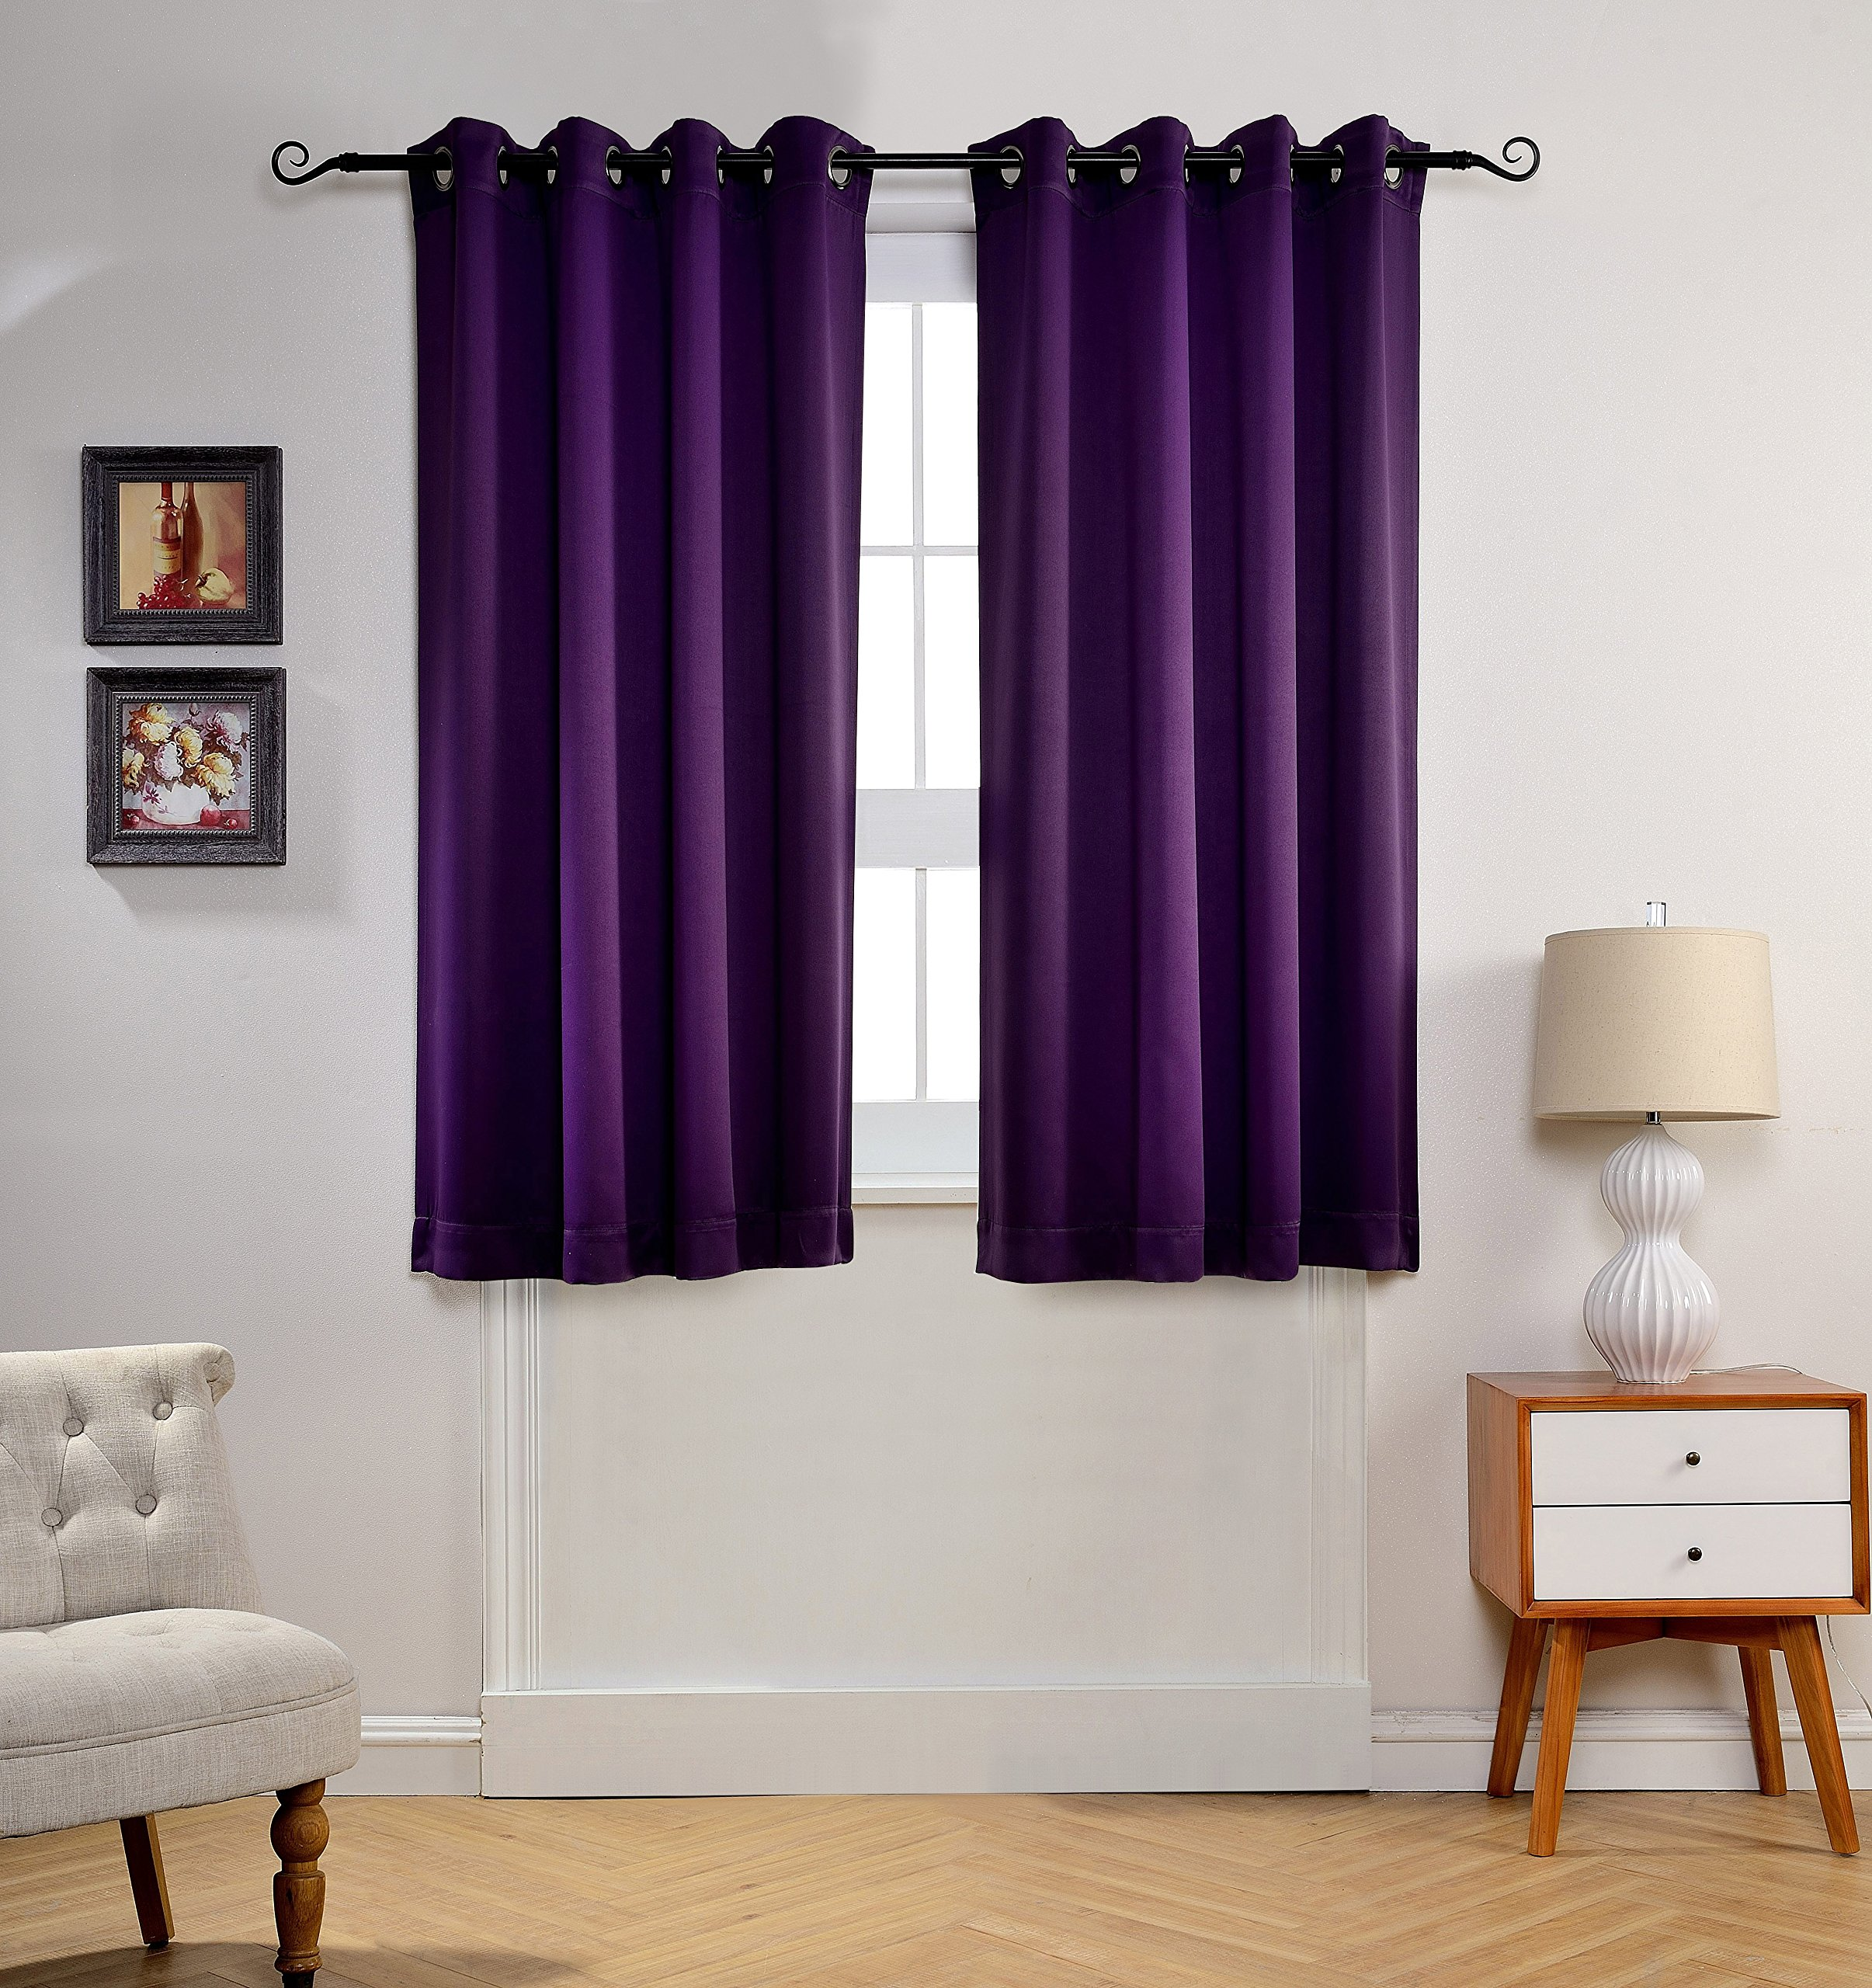 Amazon Curtains Bedroom: Short Curtains: Amazon.com